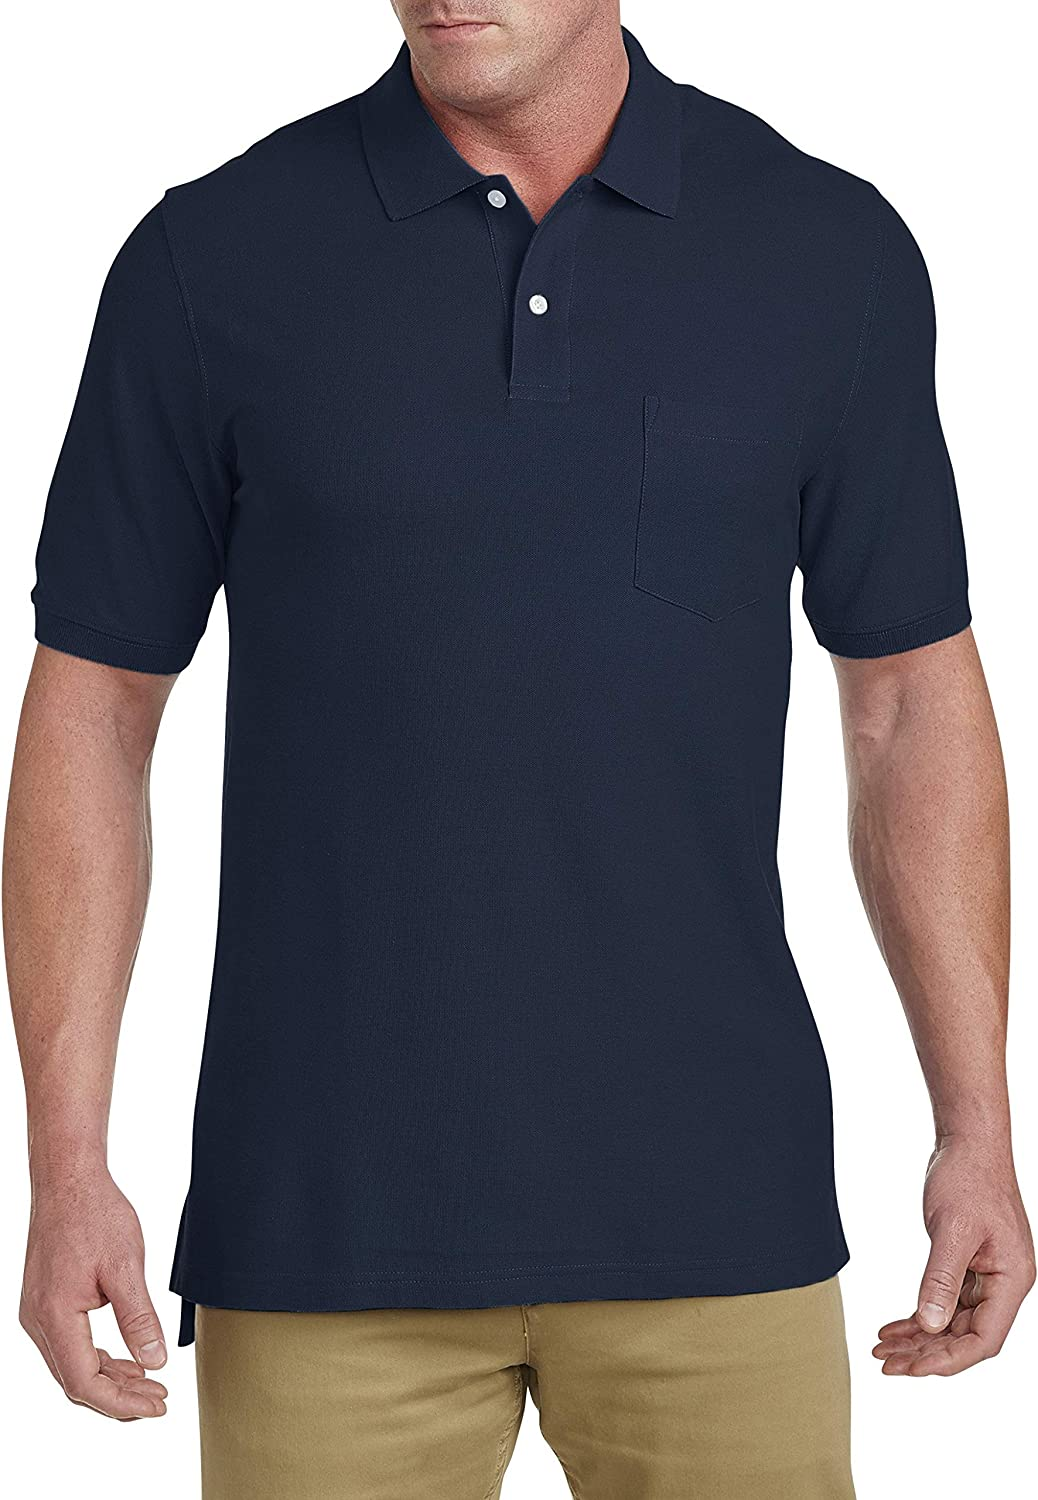 Harbor Bay by DXL Big and Tall Pocket Pique Polo (XL-Tall